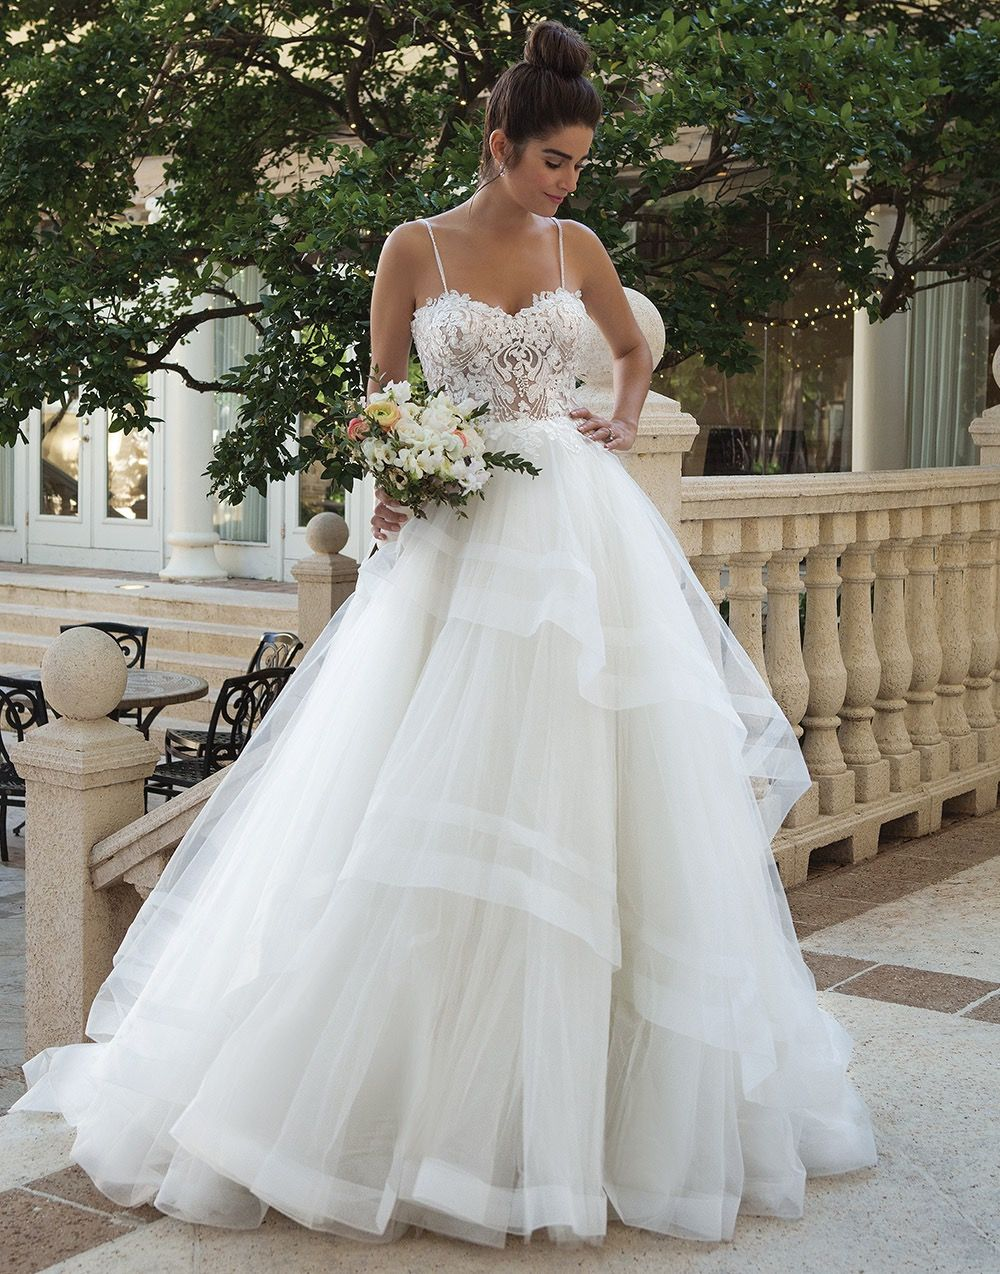 9925d705f596 Sincerity Bridal 44090 - The Blushing Bride Boutique in Frisco, Texas